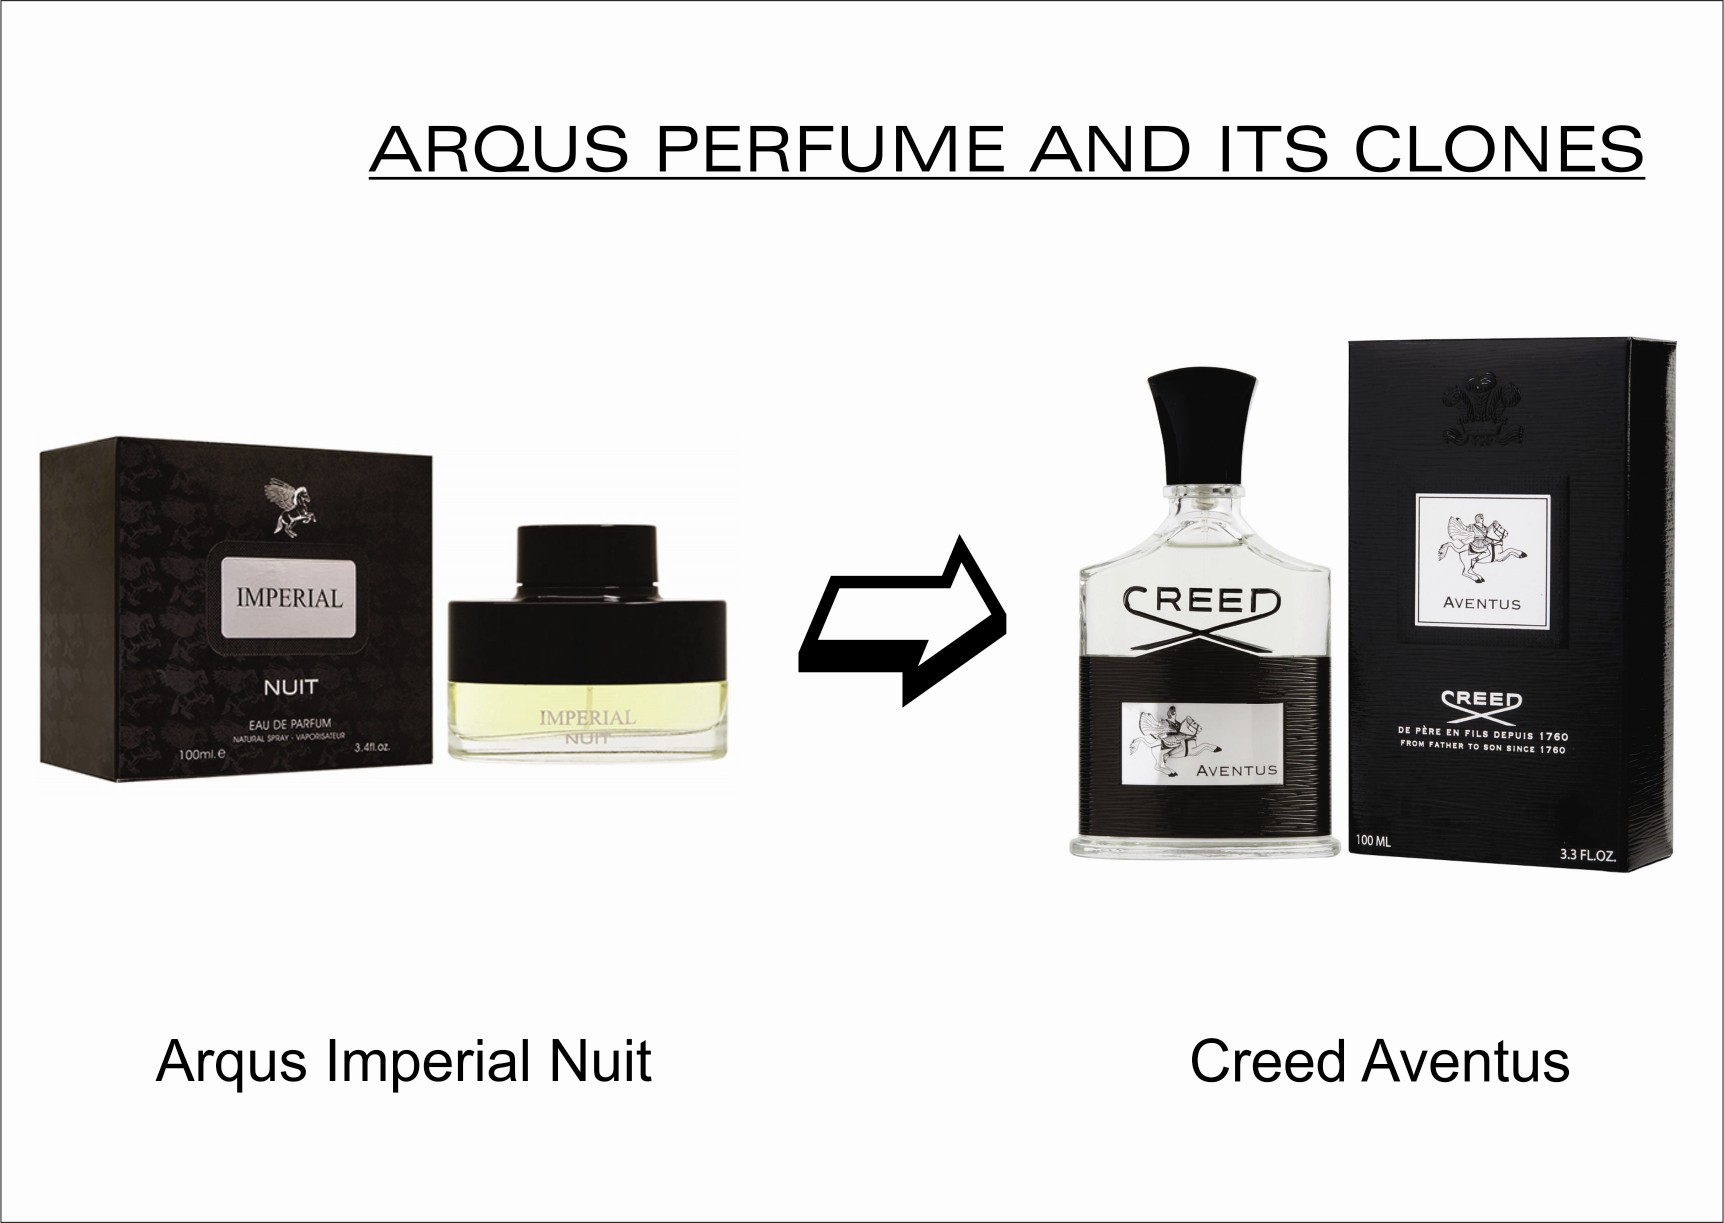 arqus-imperial-nuit-for-men-100-ml-edp-by-lattafa-perfumes-creed-aventus-perfume-for-men-100-ml